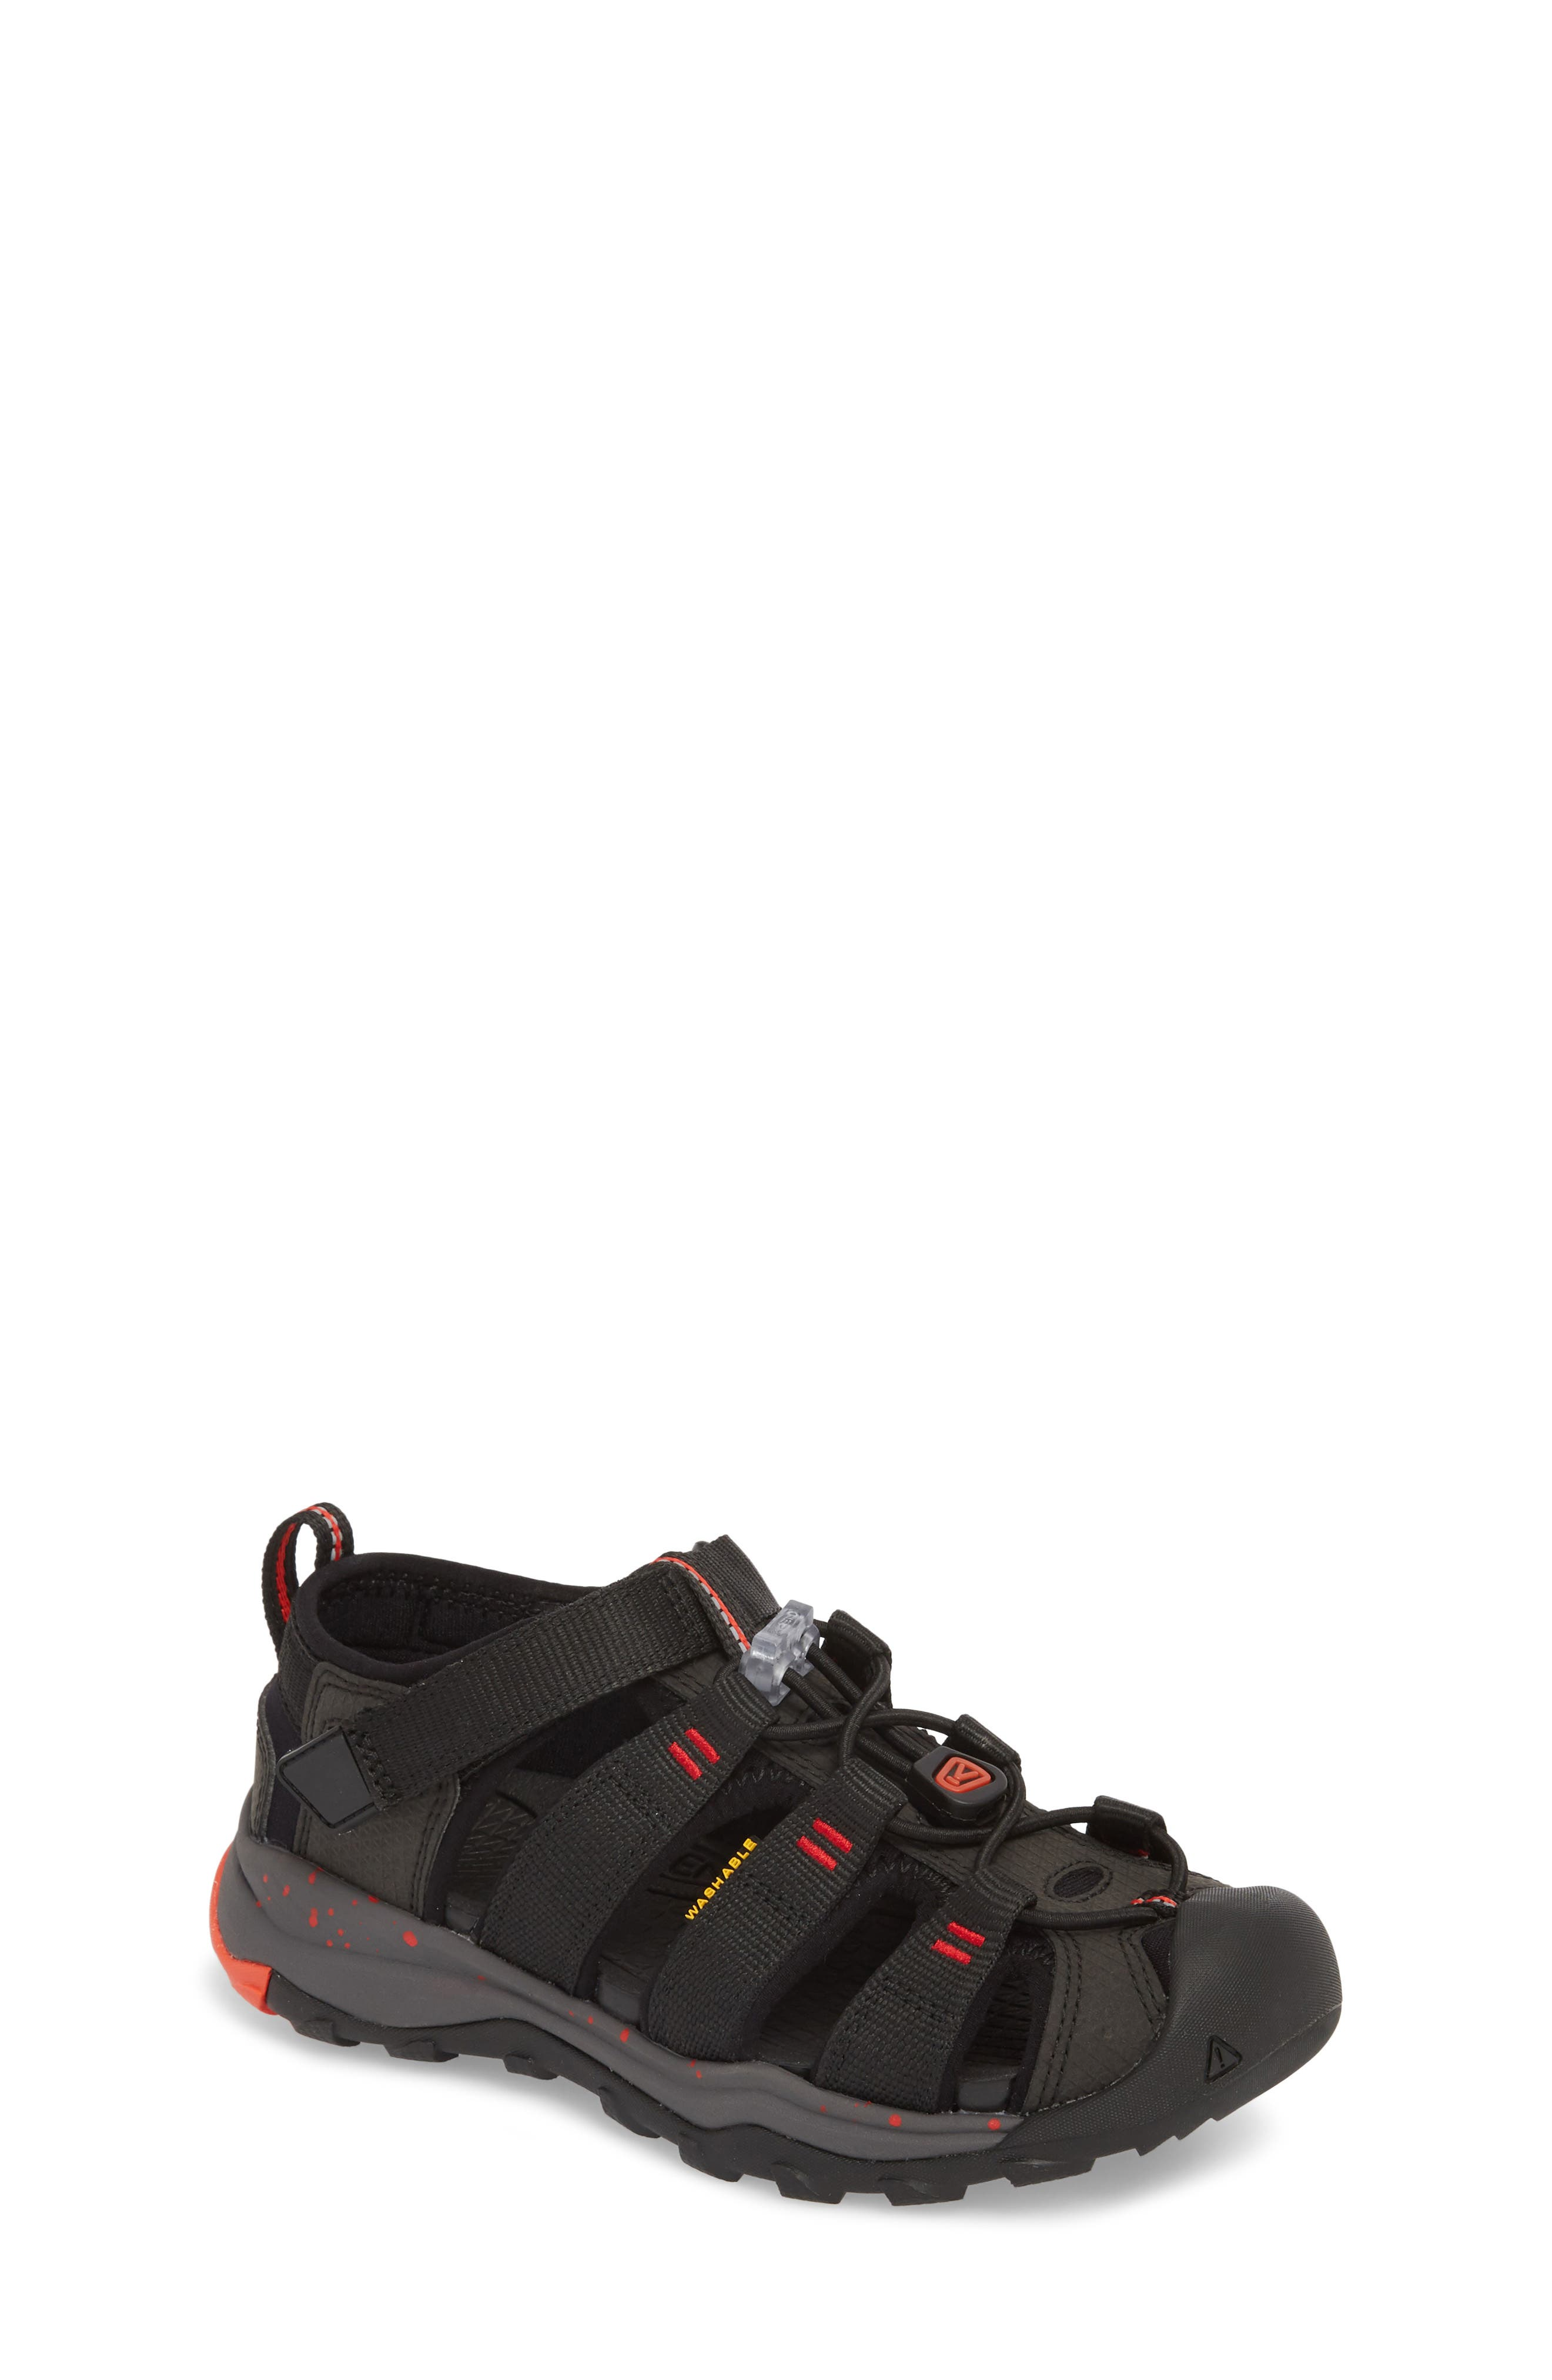 Newport Neo H2 Water Friendly Sandal,                         Main,                         color, Black/ Fiery Red